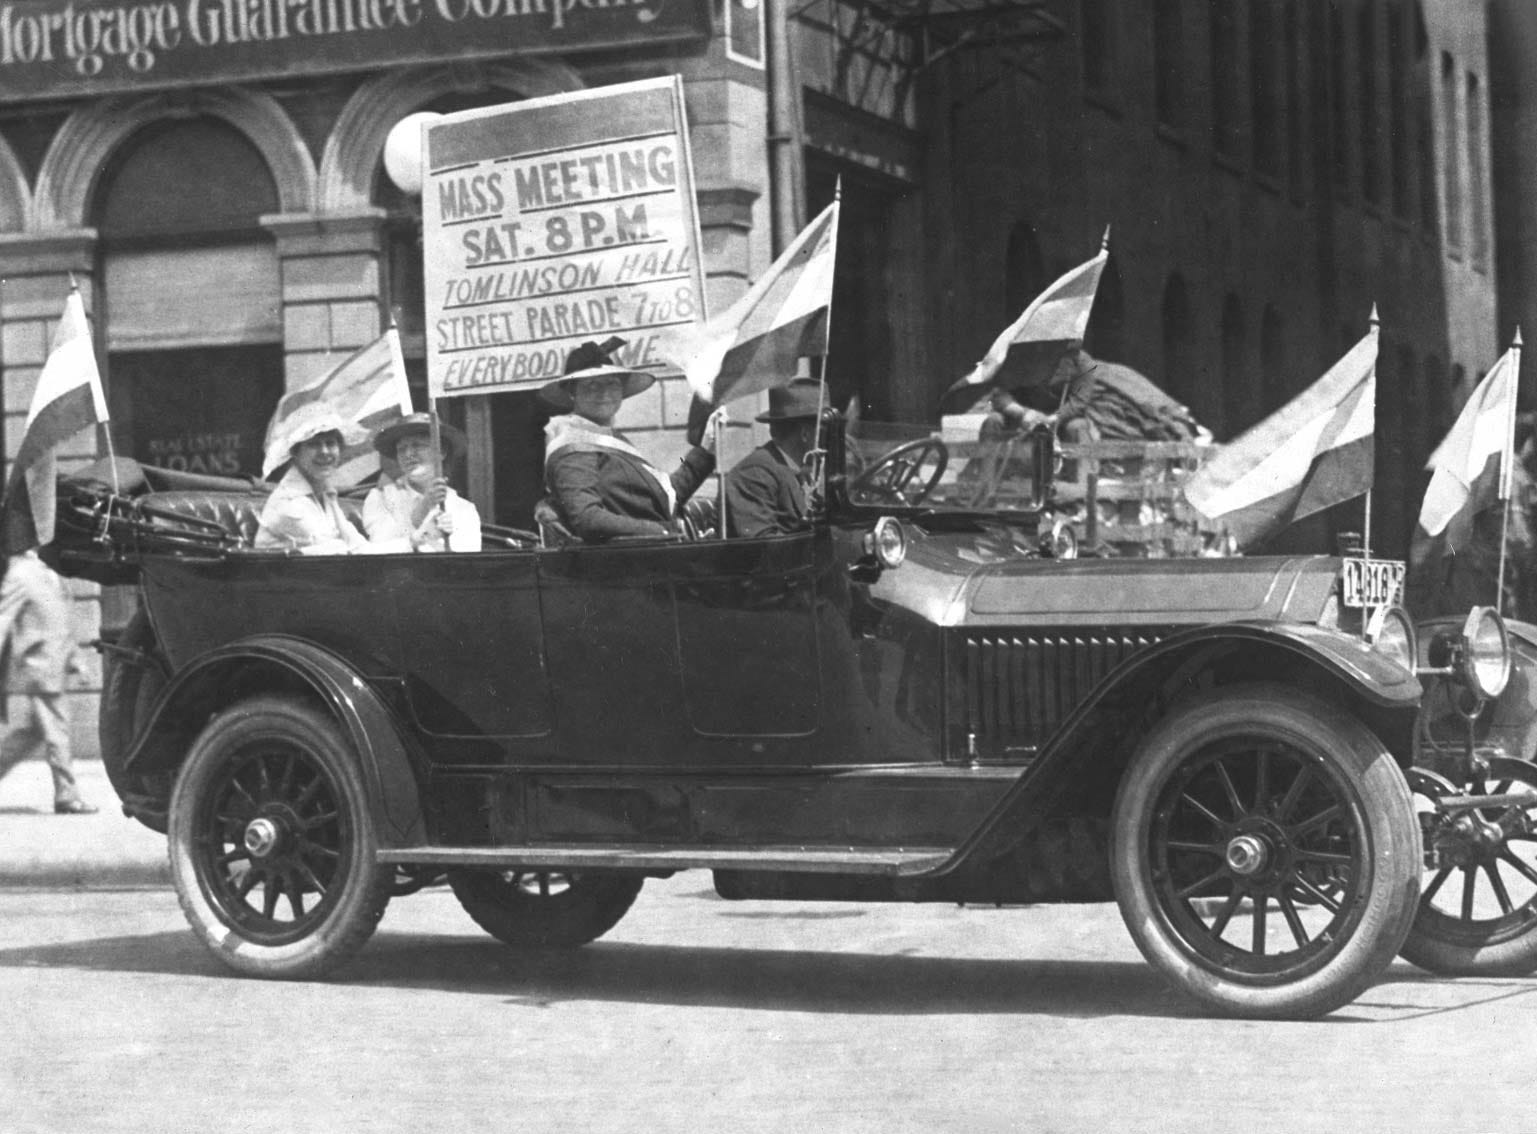 Decorated automobiles drove throughout the city on June 23, 1916, announcing a mass meeting the next night, to further the cause of suffrage (womenÕs right to vote). This automobile, owned by Republican nominee for vice-president, Charles W. Fairbanks, led the procession. Fairbanks' daughter, Mrs. John W. Timmons, sitting in the front seat, held up the sign with Elsie Hill and Corinne Eaglesfield (in the back seat). The next afternoon, the Indiana branch of the Congressional Union was organized, followed later in the day by IndianapolisÕ first suffrage parade.